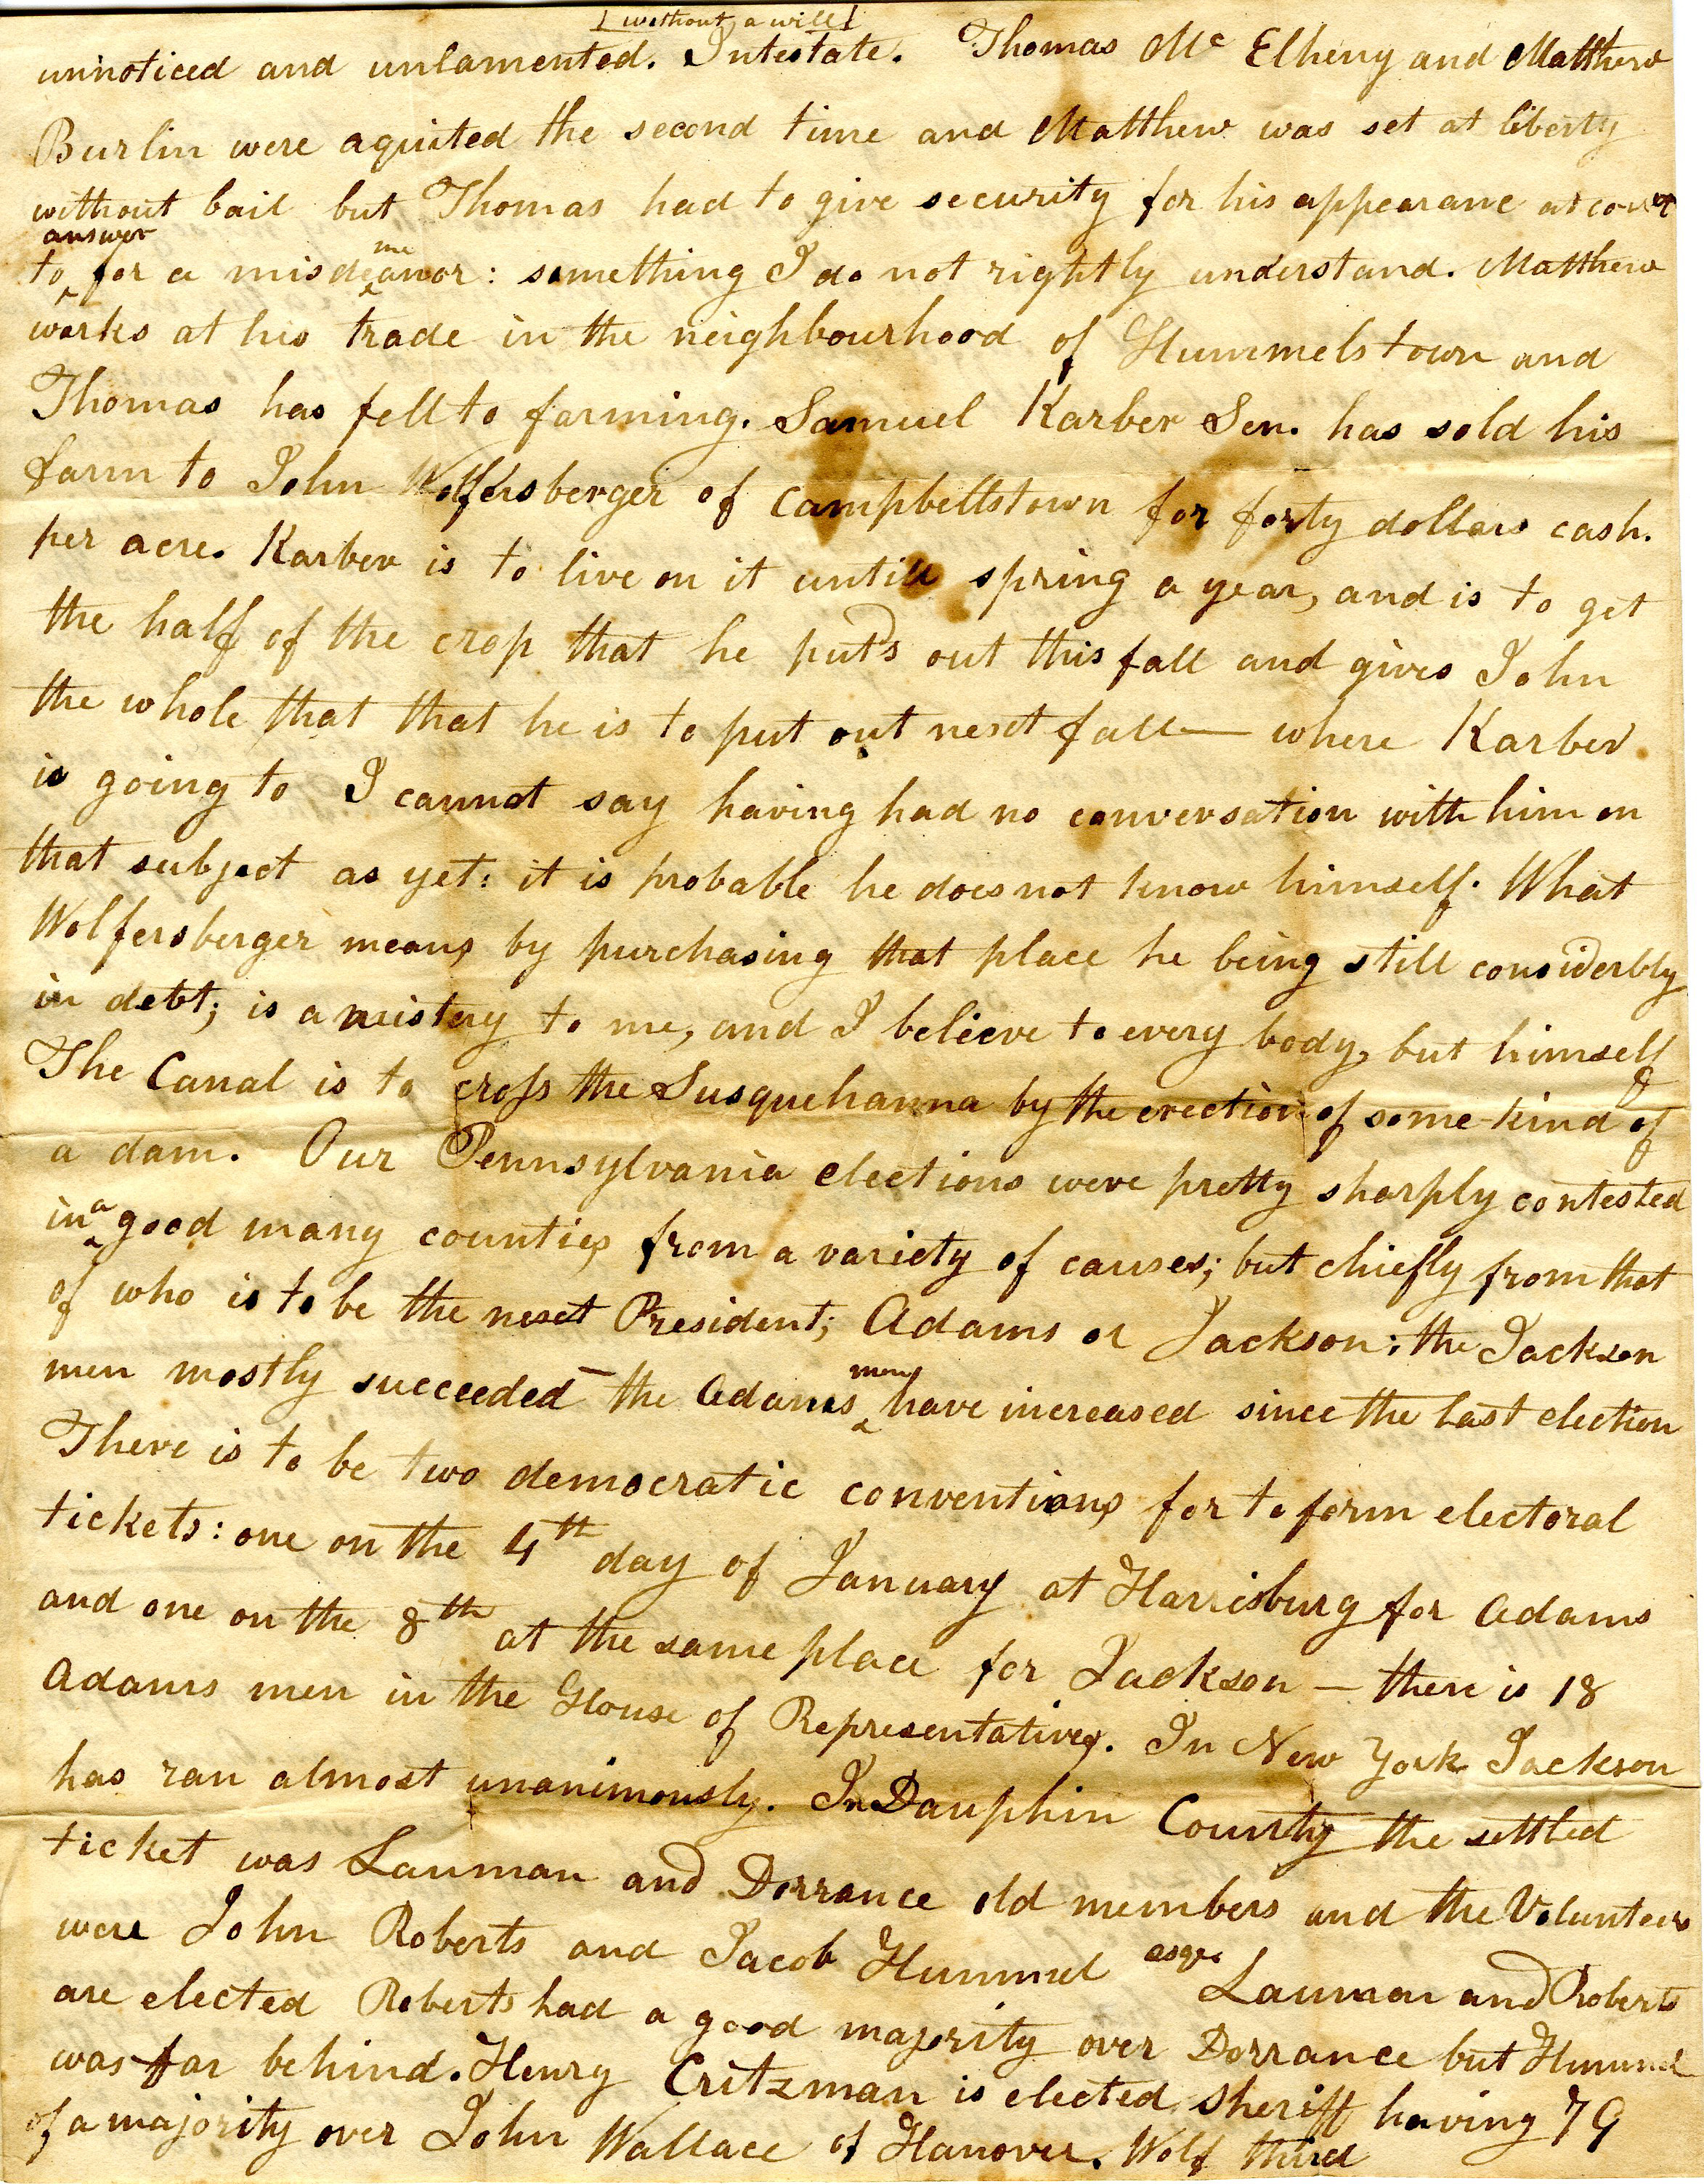 Letter From William Geddes to John Geddes, November 27th, 1827  image